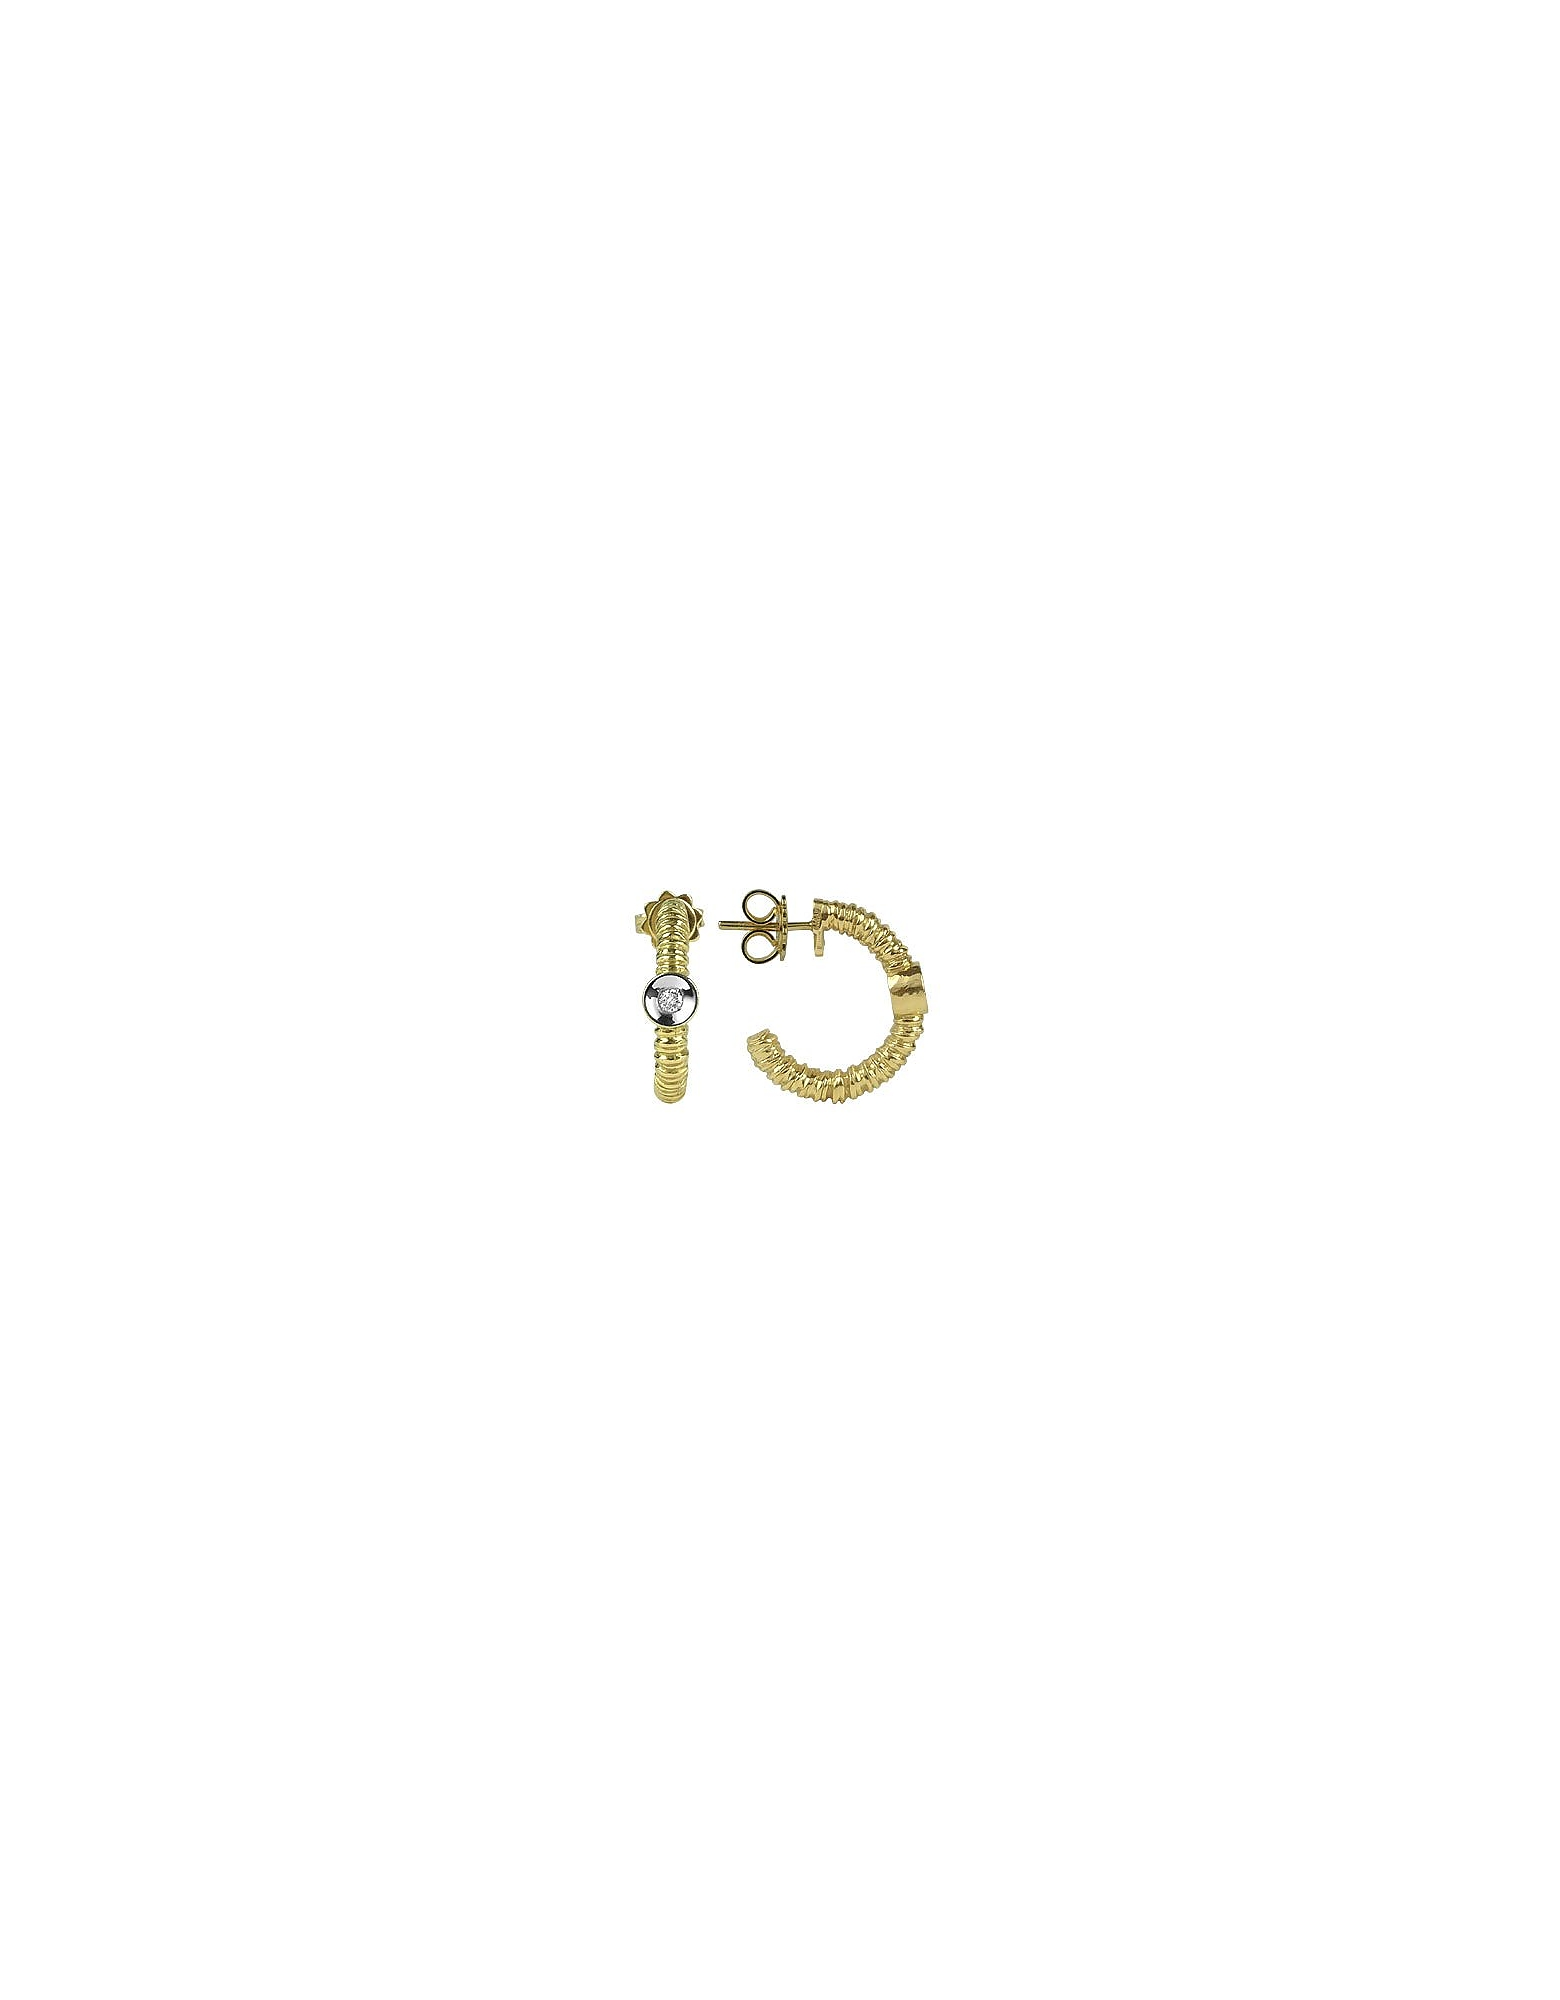 Torrini Earrings, Rondelle - 18K Gold and Diamond Earrings